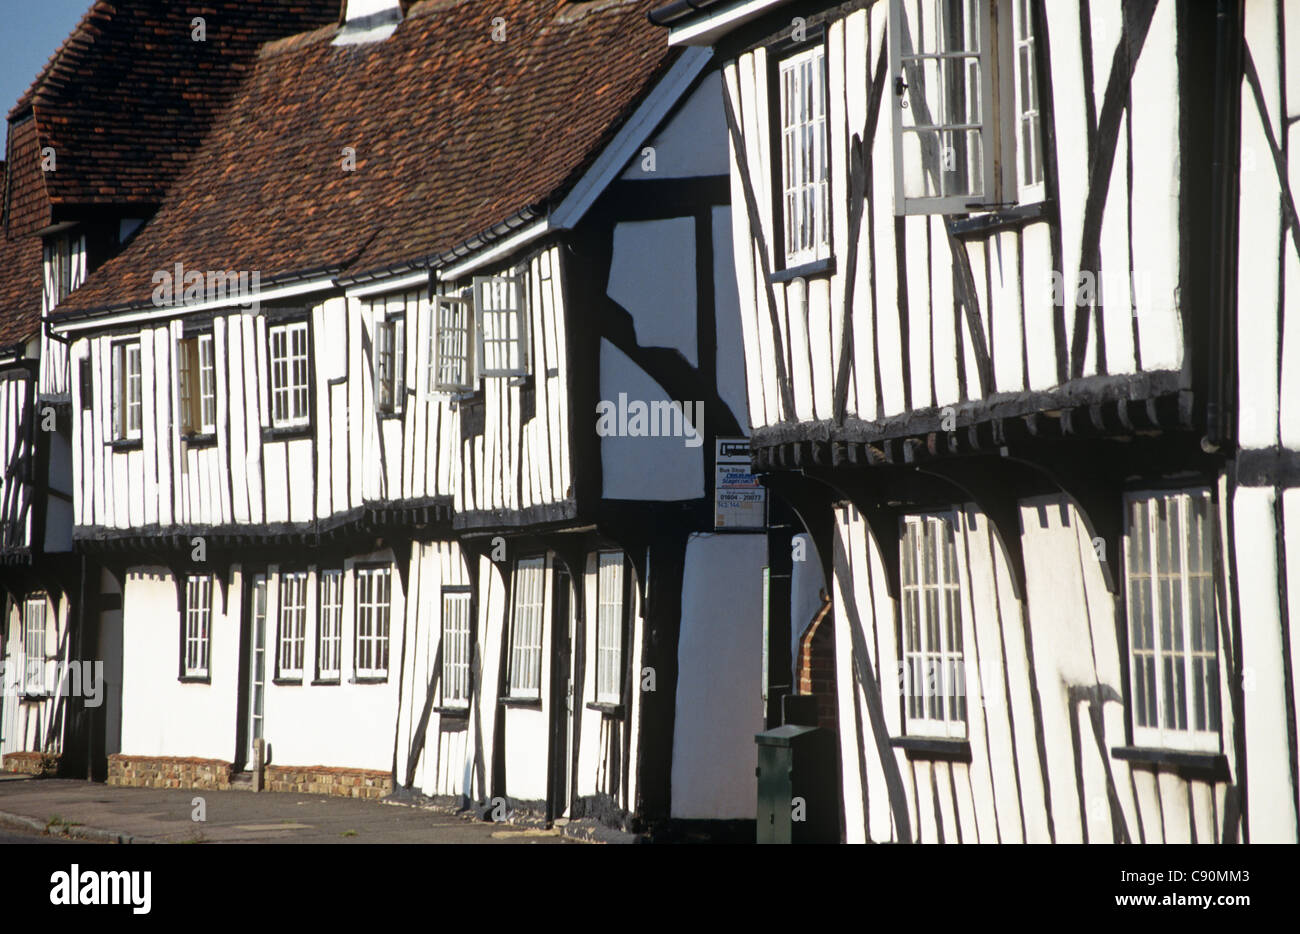 Elstow village has historic medieval houses with timber frames lathe and plaster exteriors and a second storey overhang Stock Photo